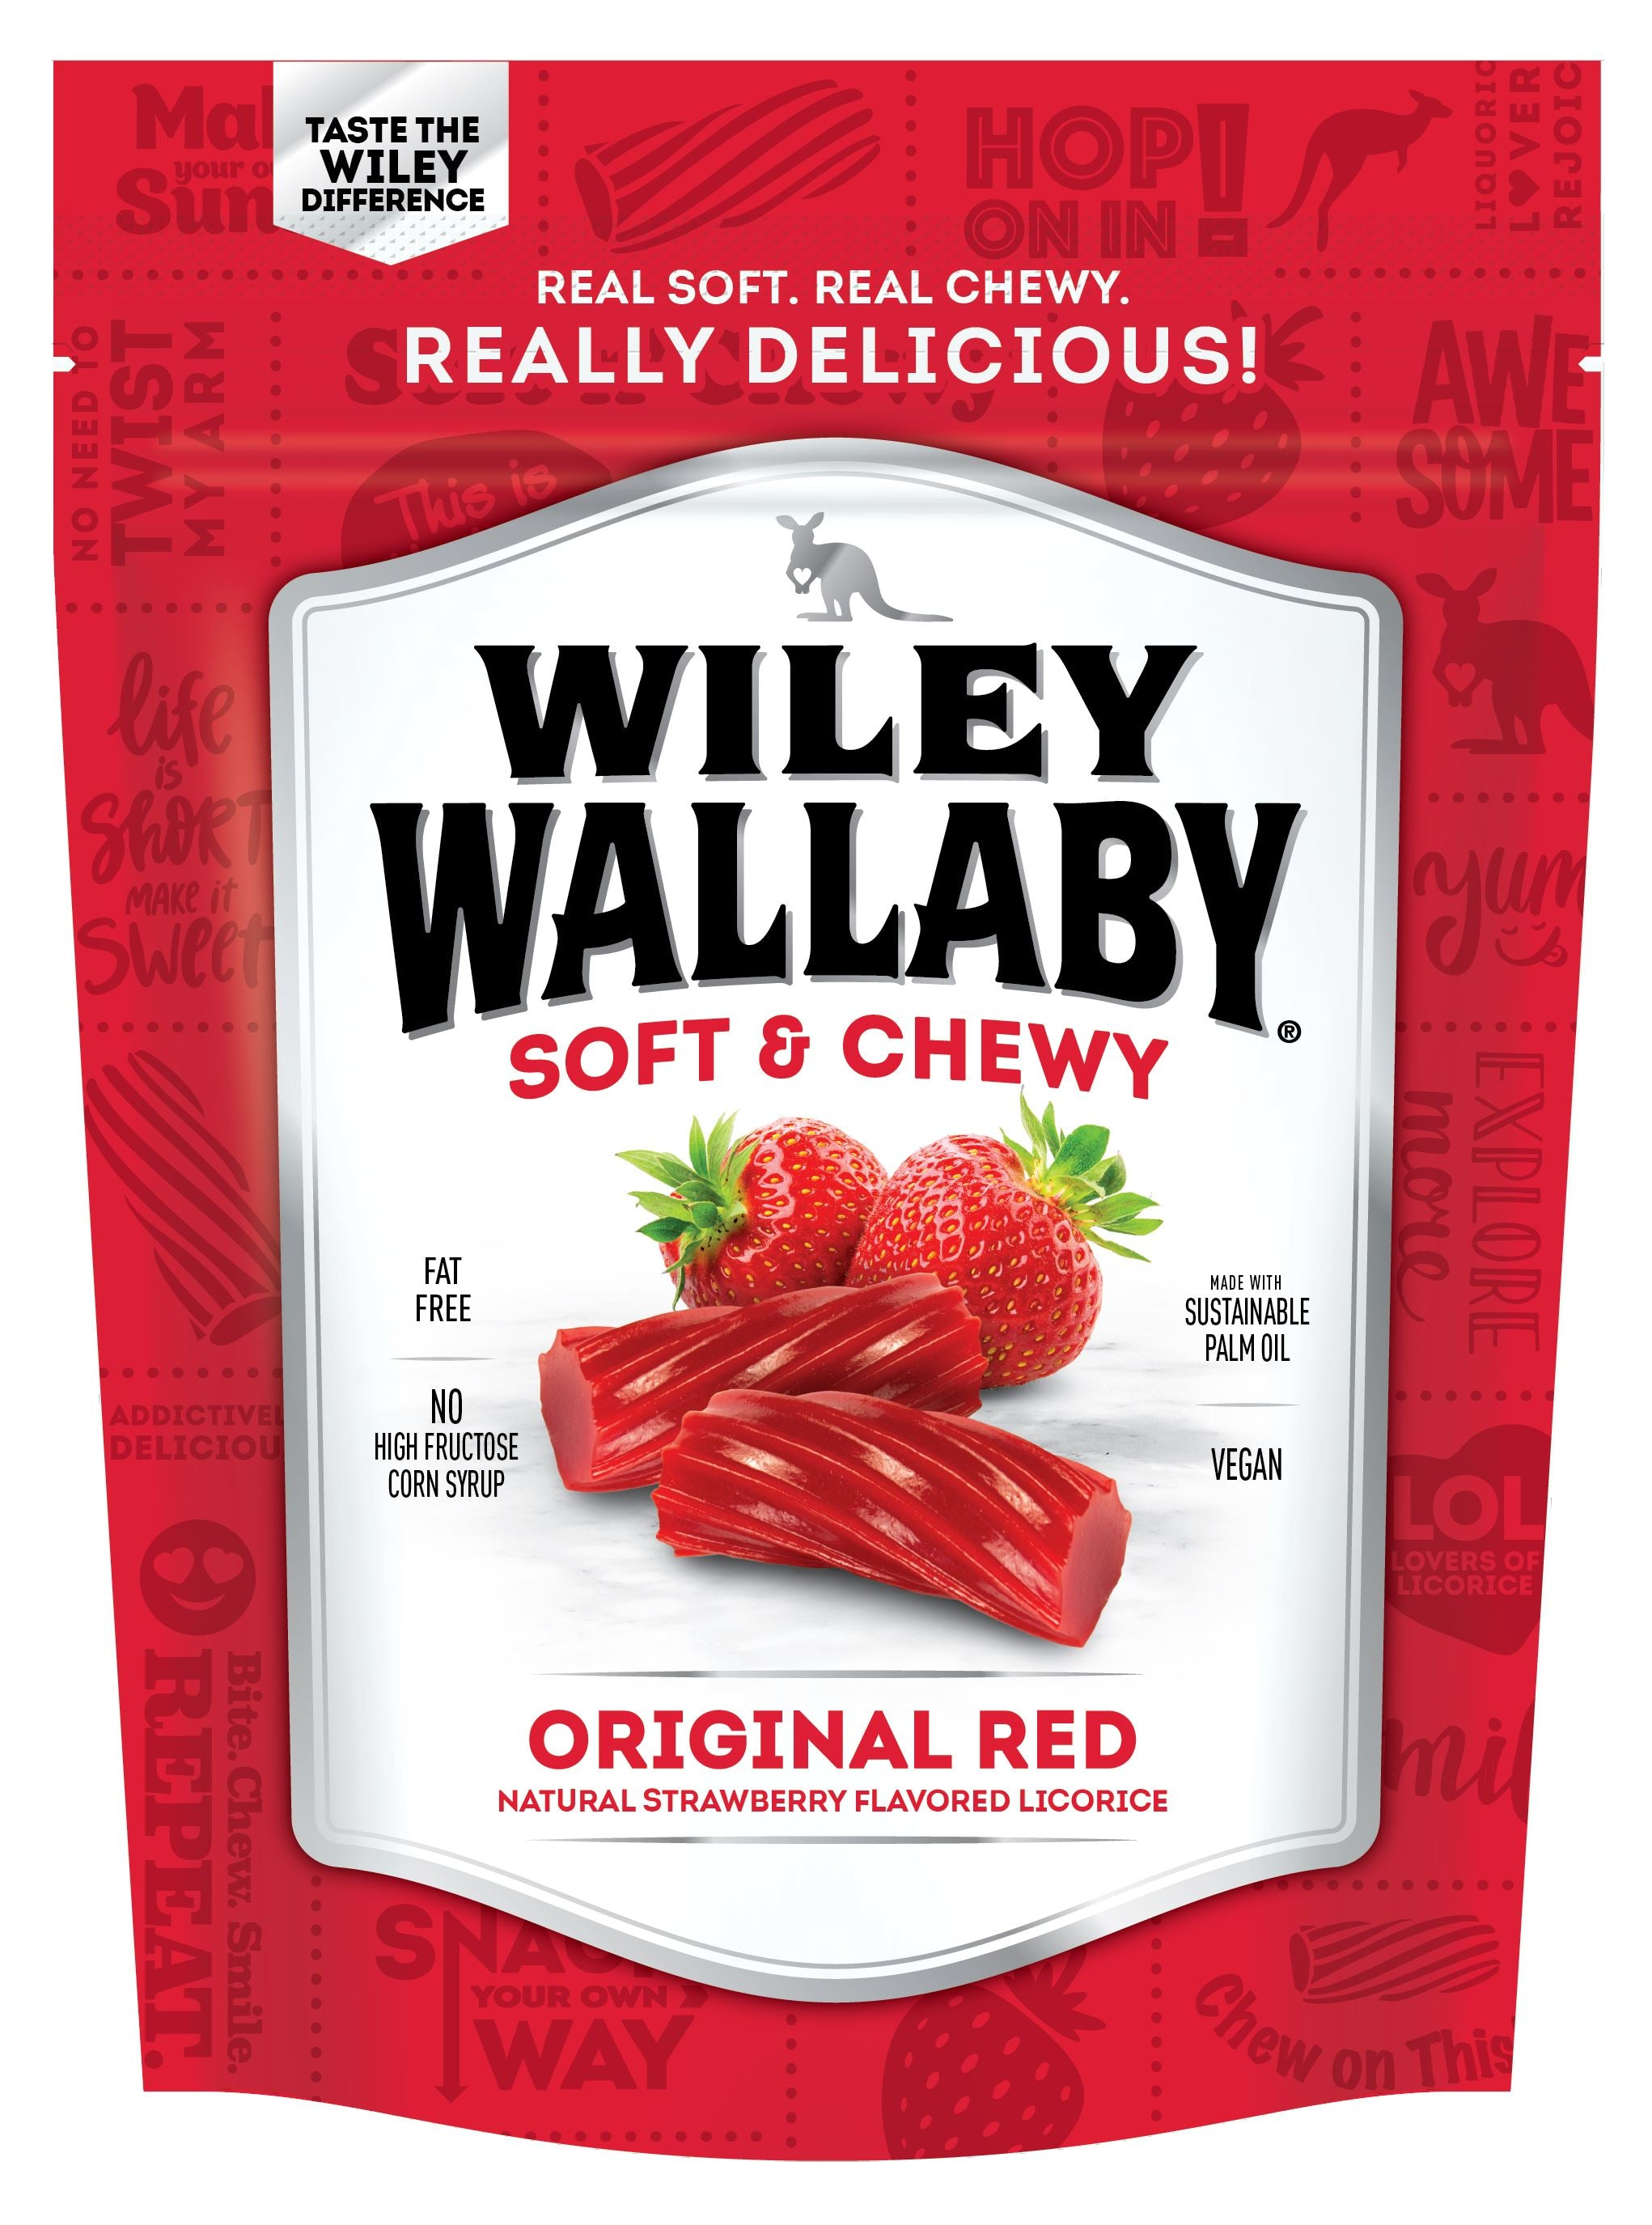 Wiley Wallaby Licorice Wiley Wallaby Original Red 10 Ounce